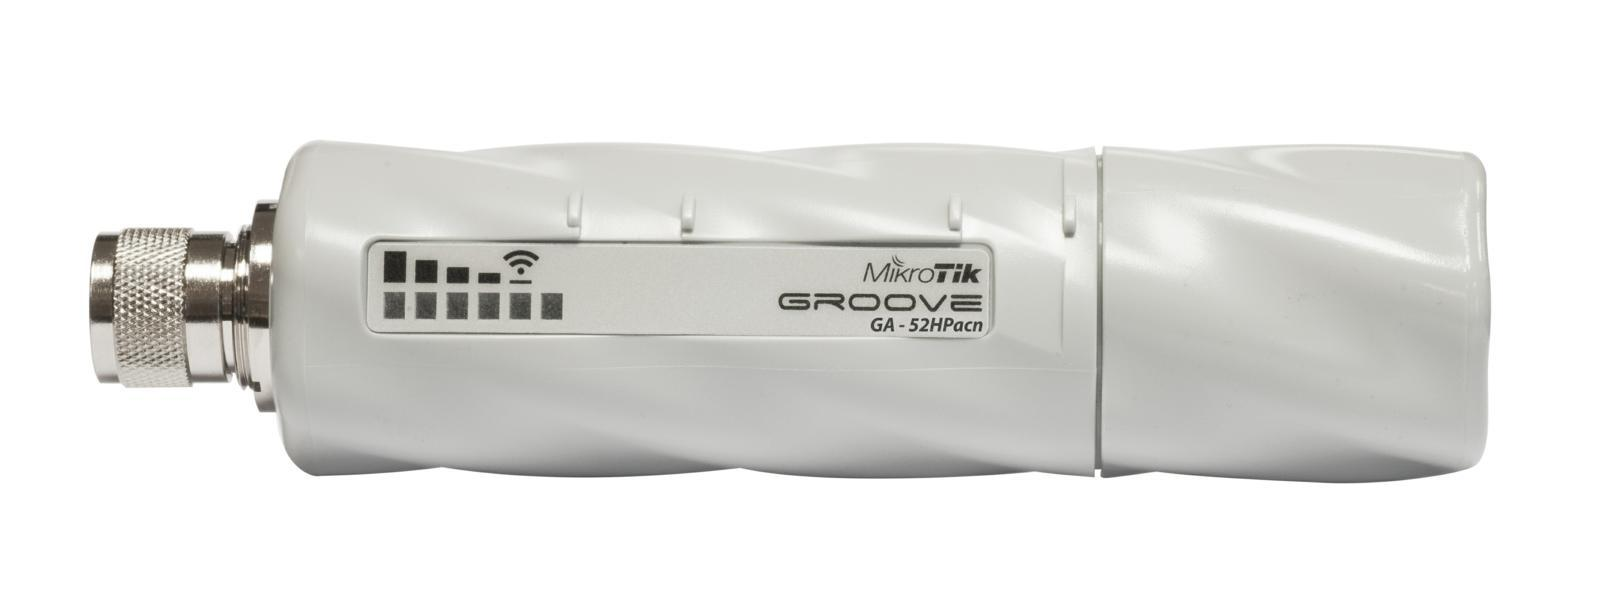 SICE Distributore Ufficiale  Wireless systems GrooveA 52 AC N-male 720MHz CPU 64MB RAM 1Glan 802.11a/b/g/n L4 | RBGROOVEGA52HPAC